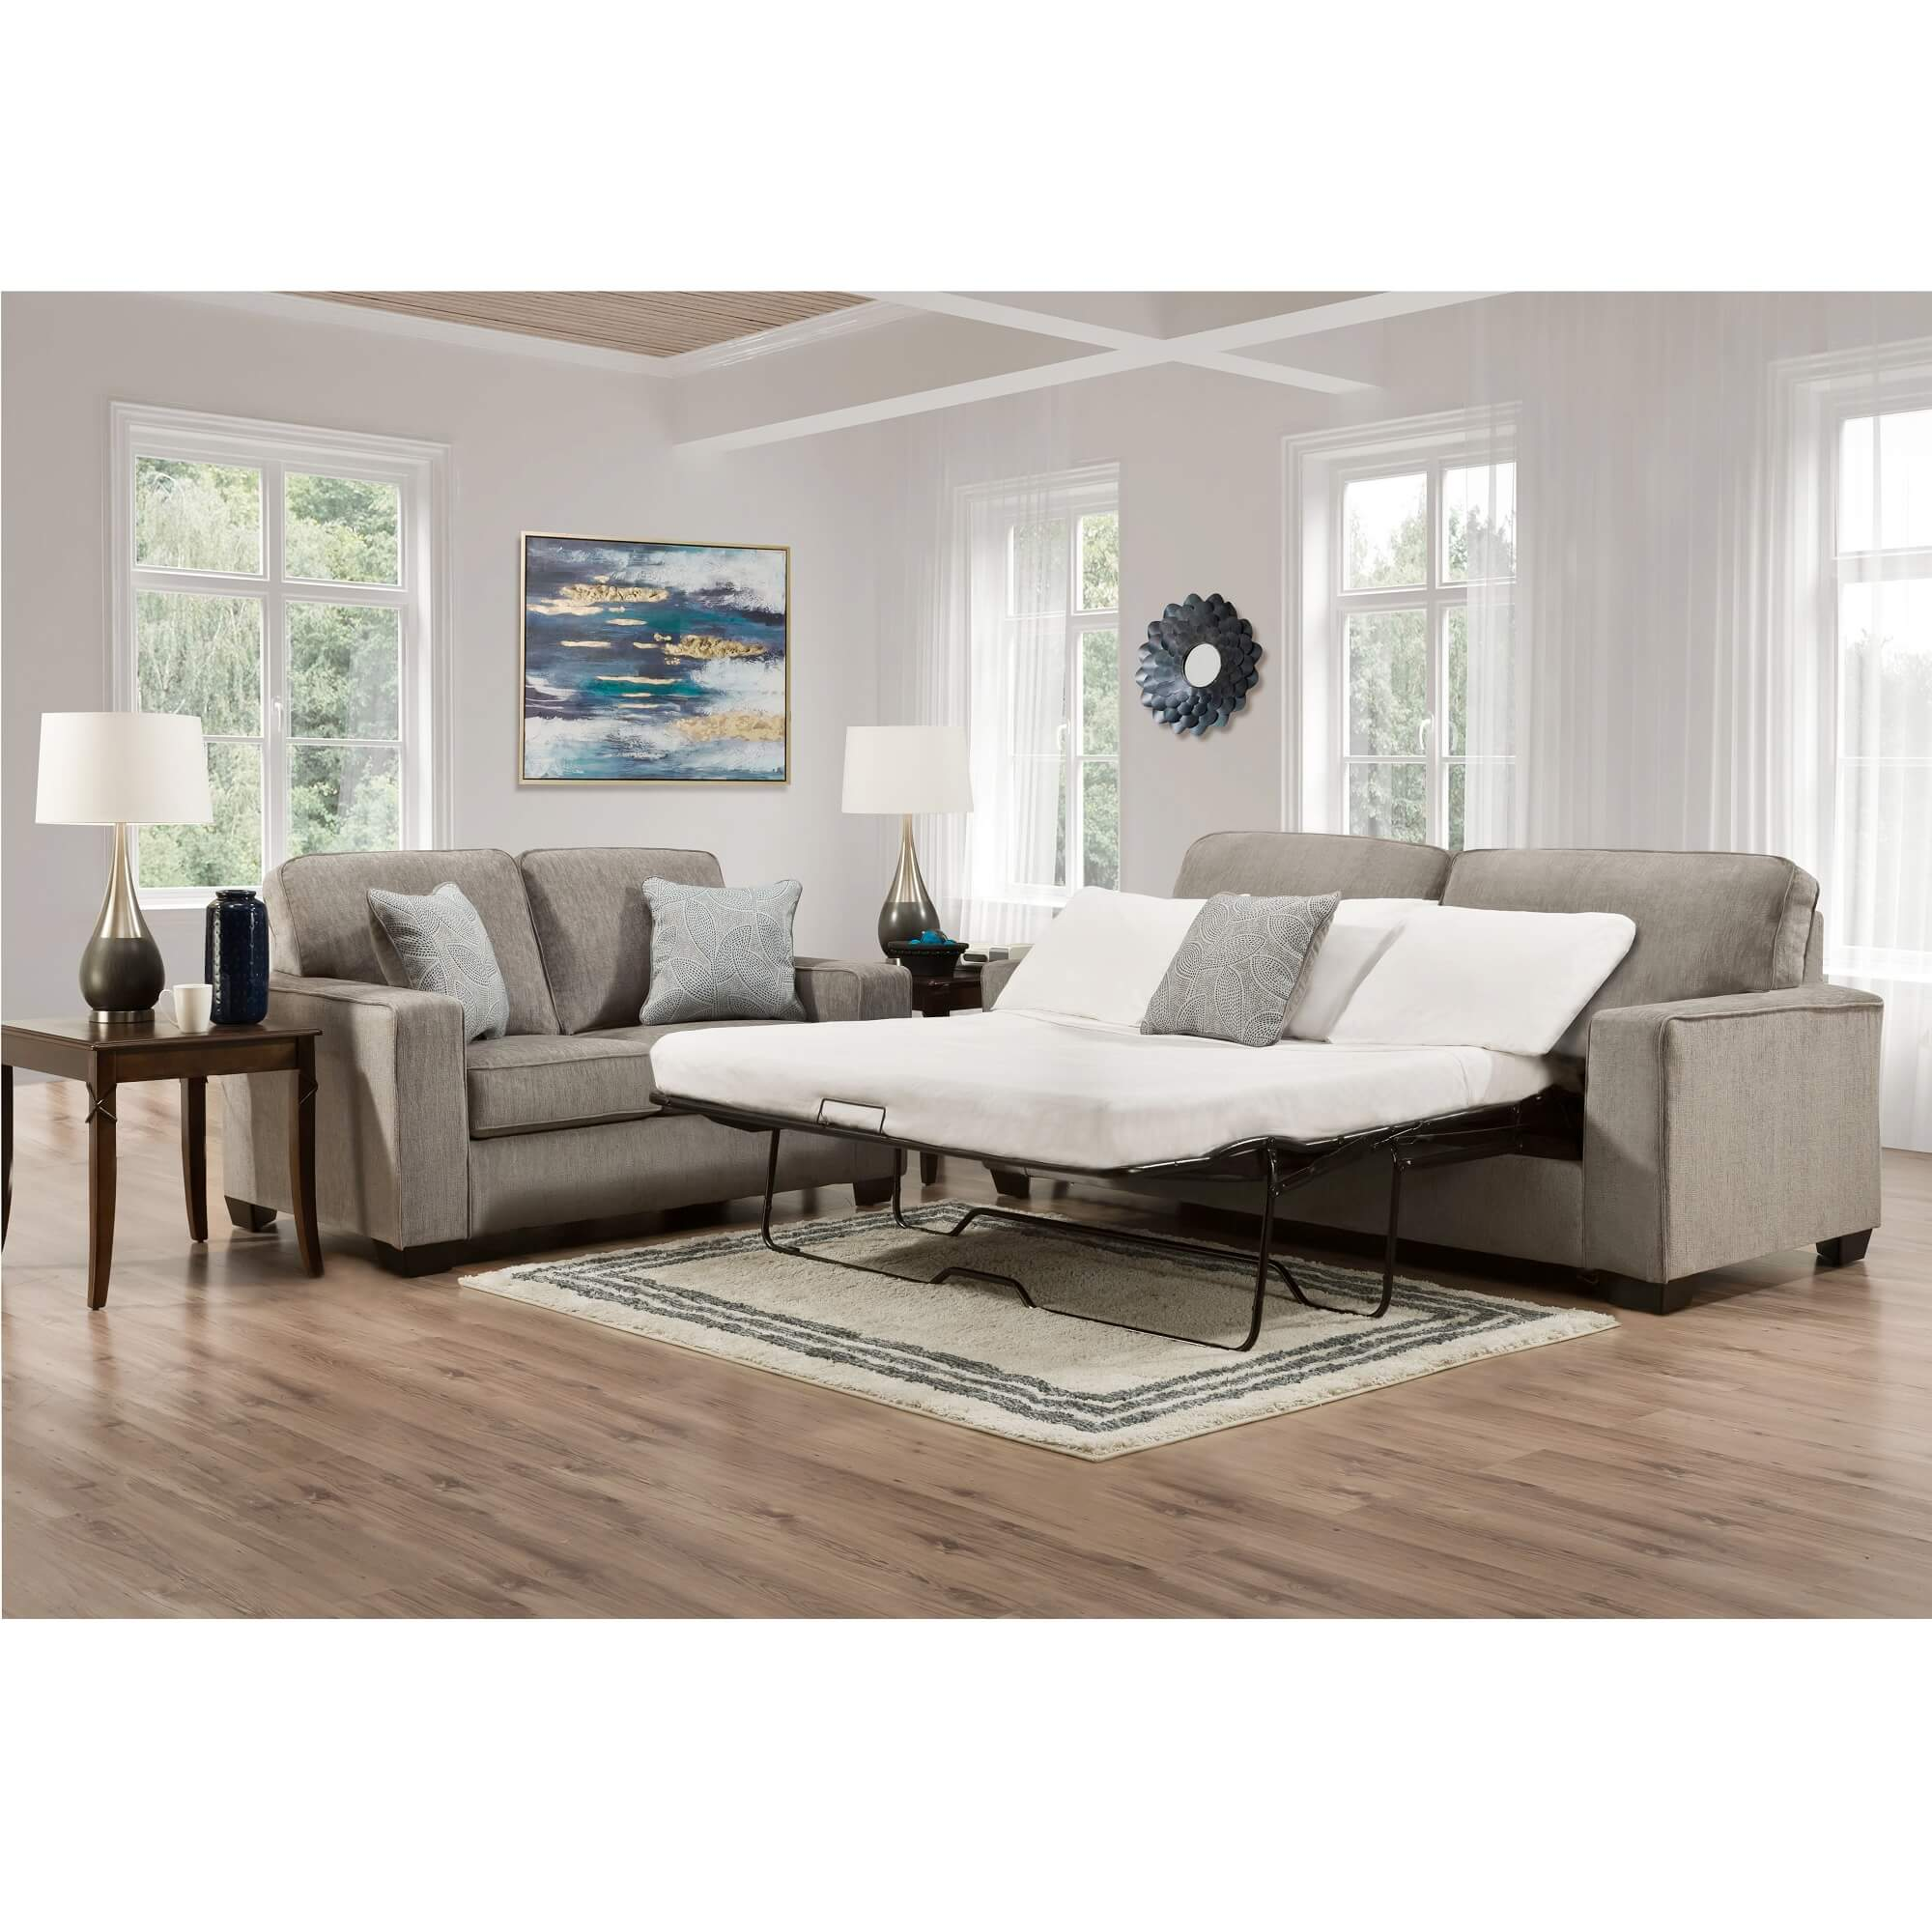 - Rent To Own Ashley 2-Piece Altari Queen Sleeper Sofa And Loveseat Set At  Aaron's Today!